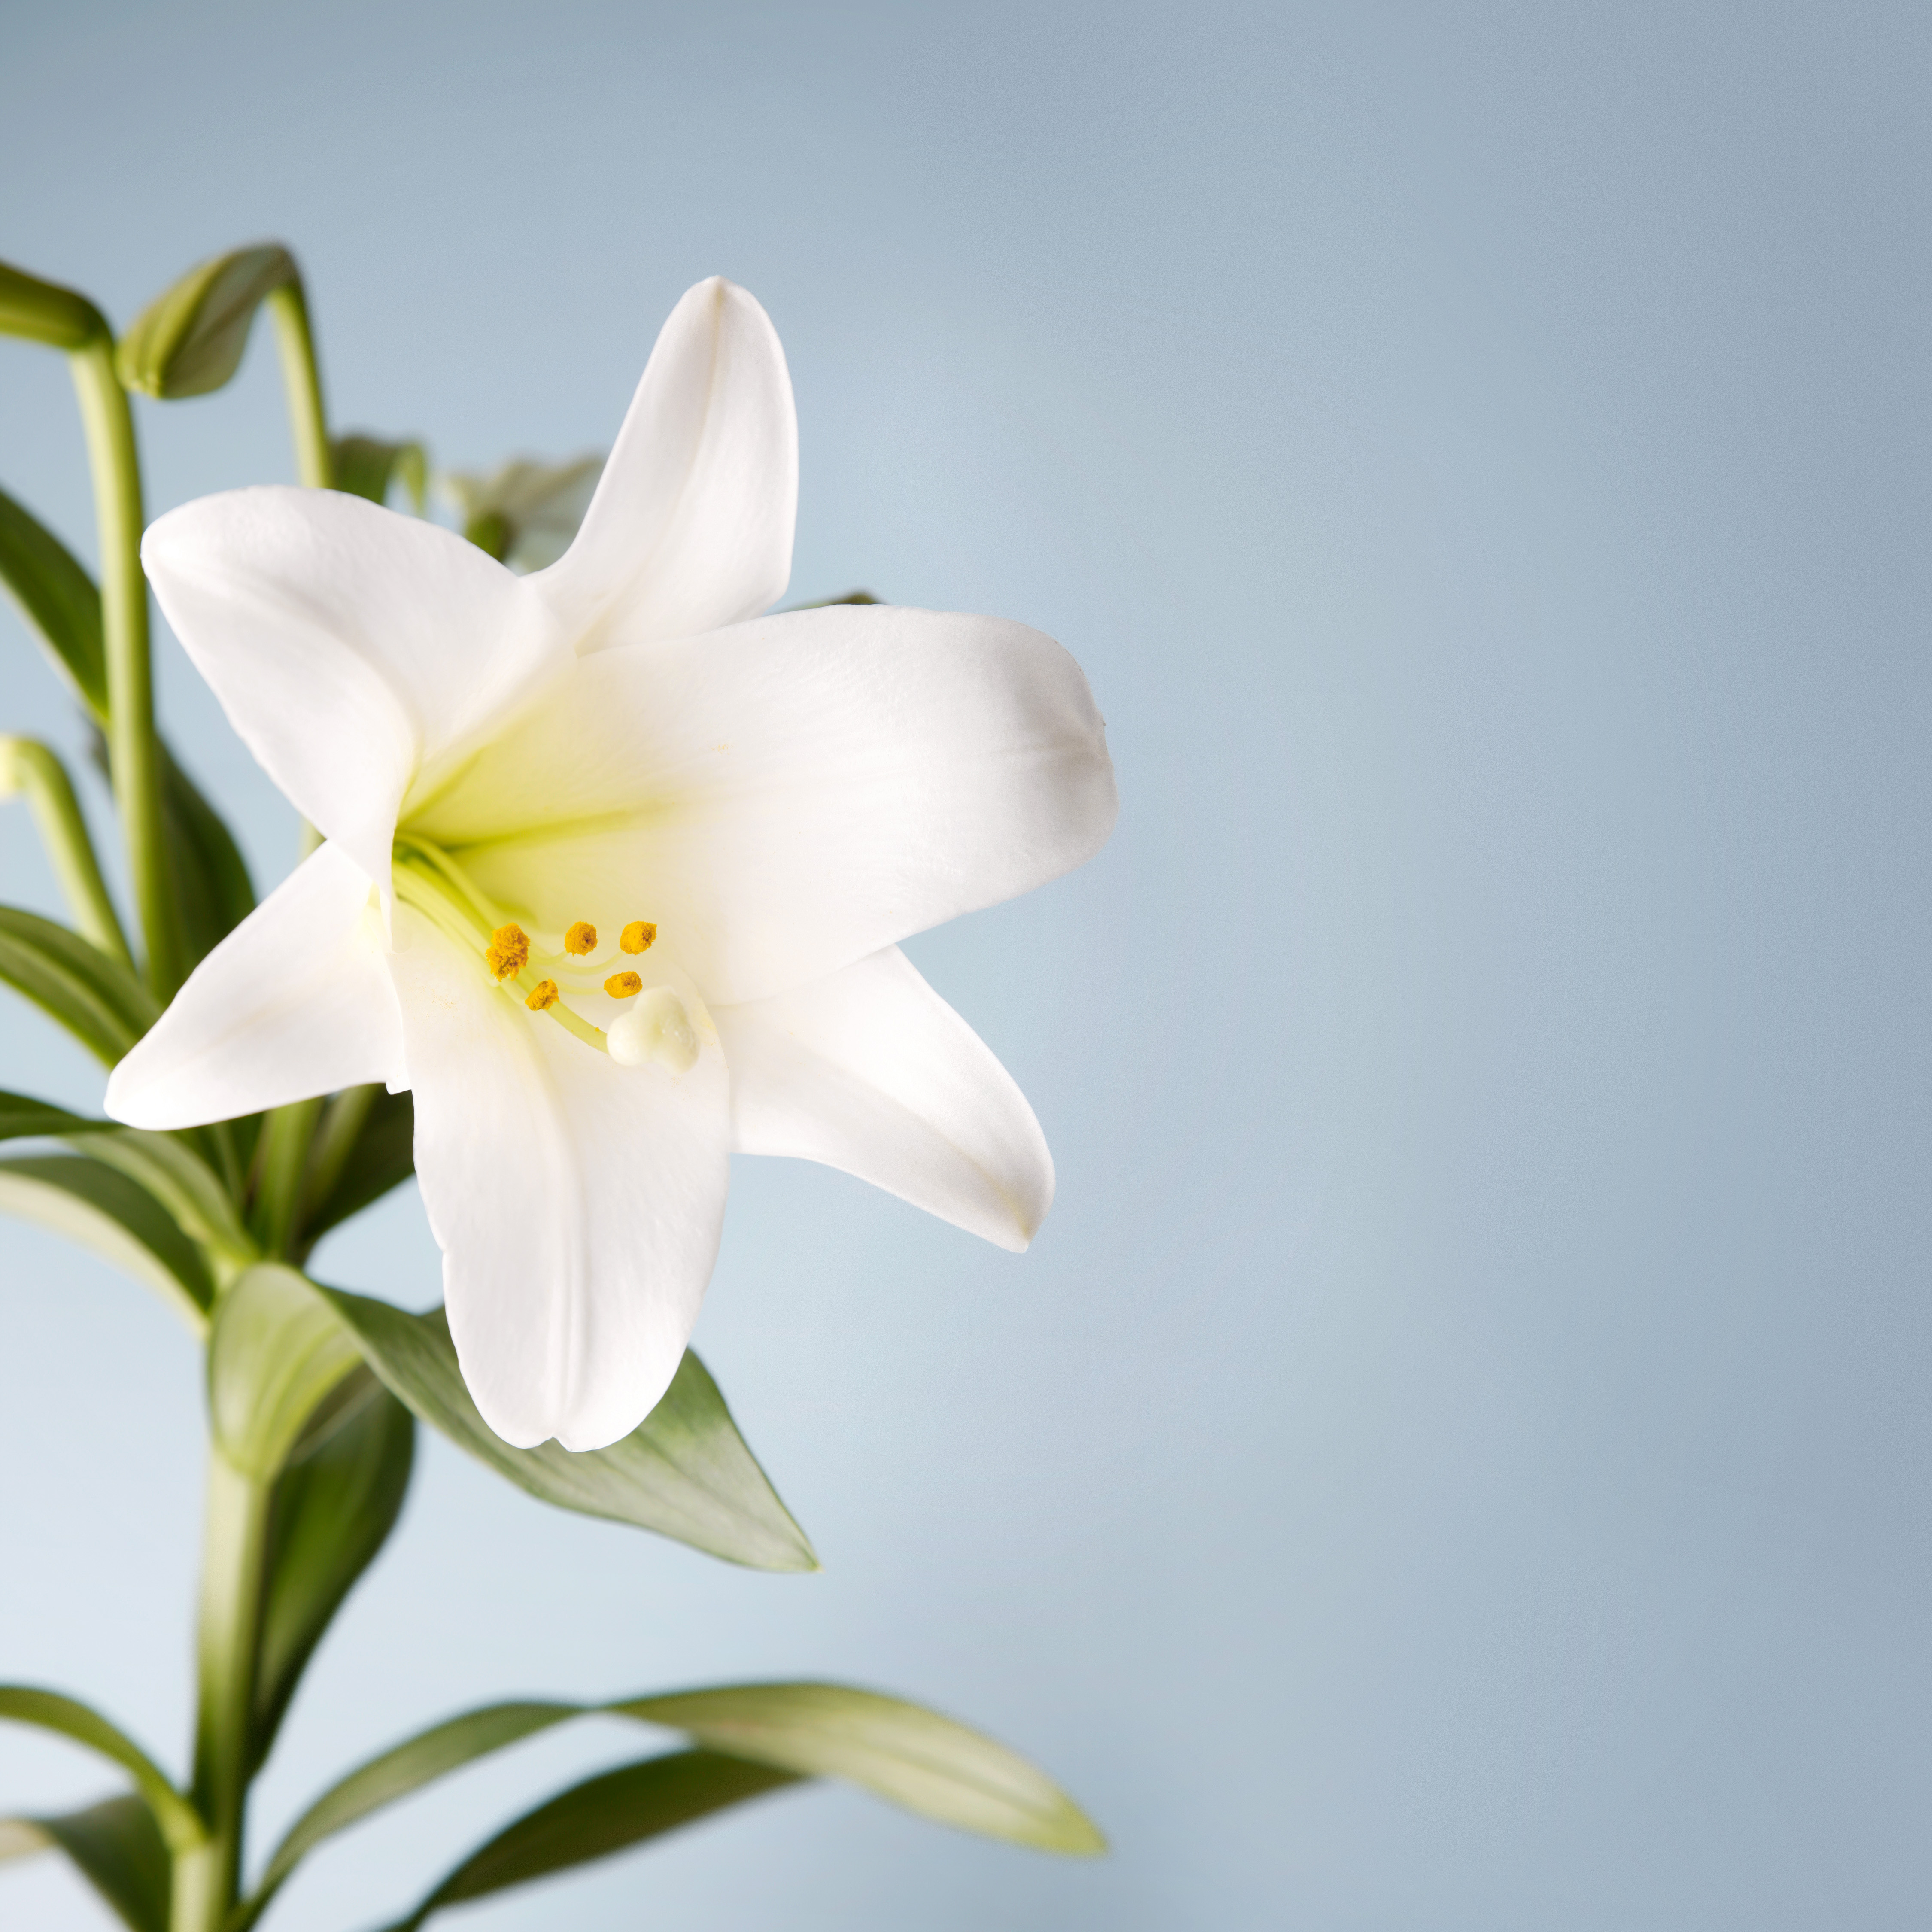 How to Care for Your Easter Lily